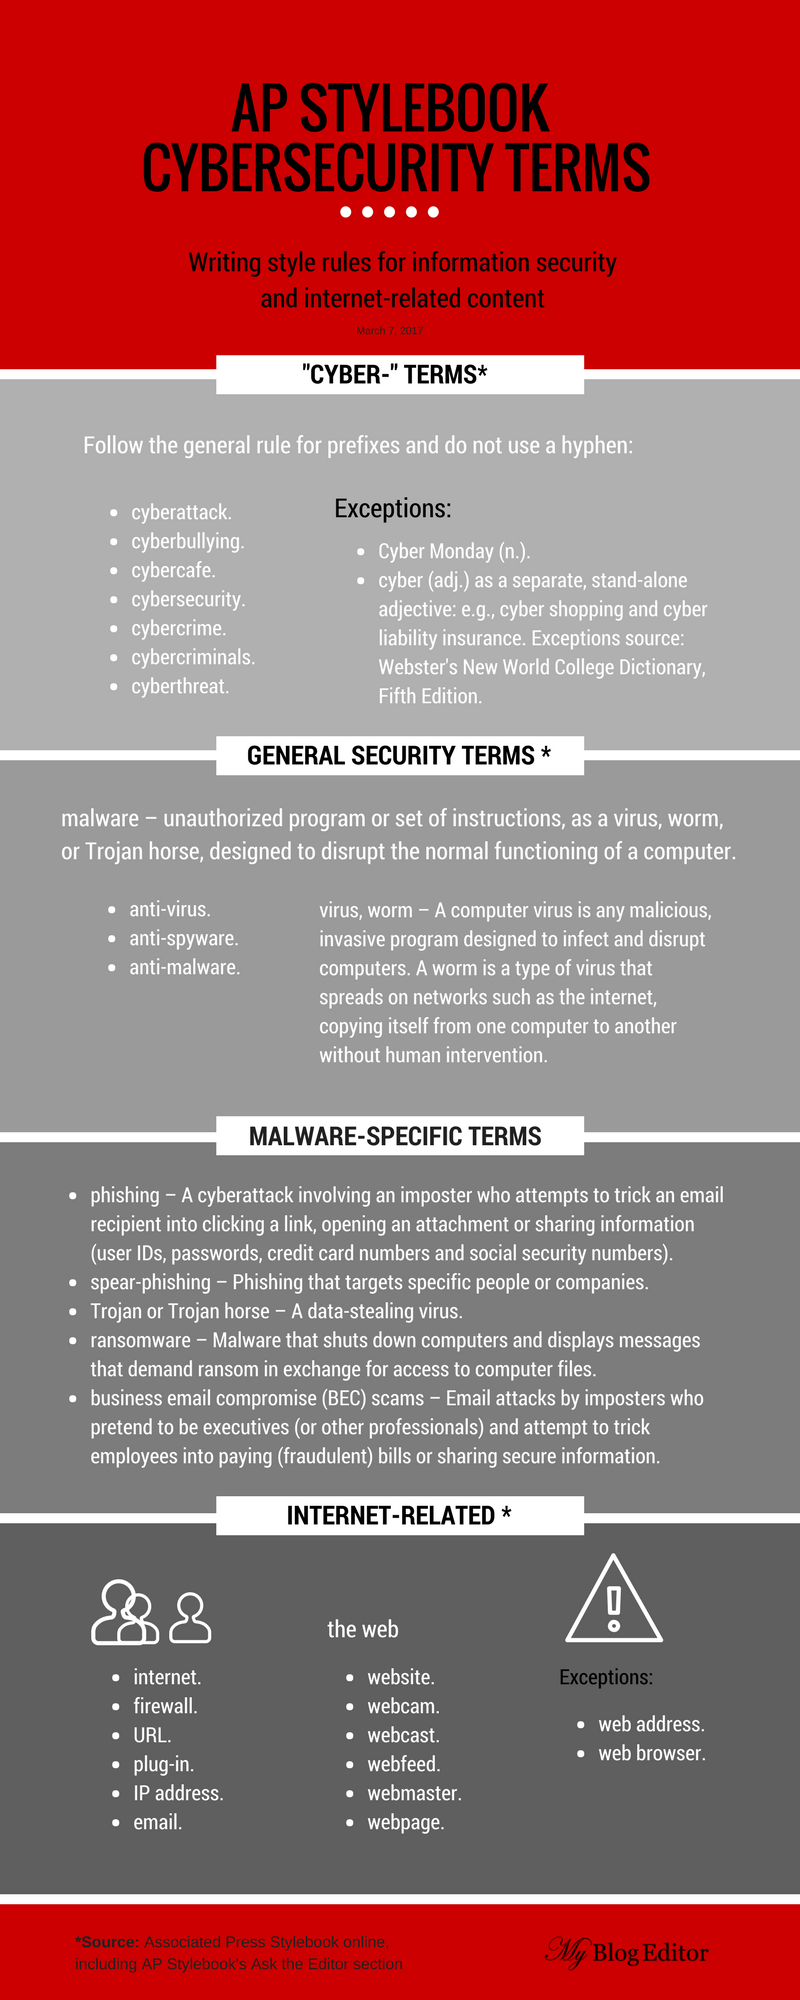 Infographic: Cybersecurity, internet terms (correct spelling, punctuation) via the Associated Press Stylebook